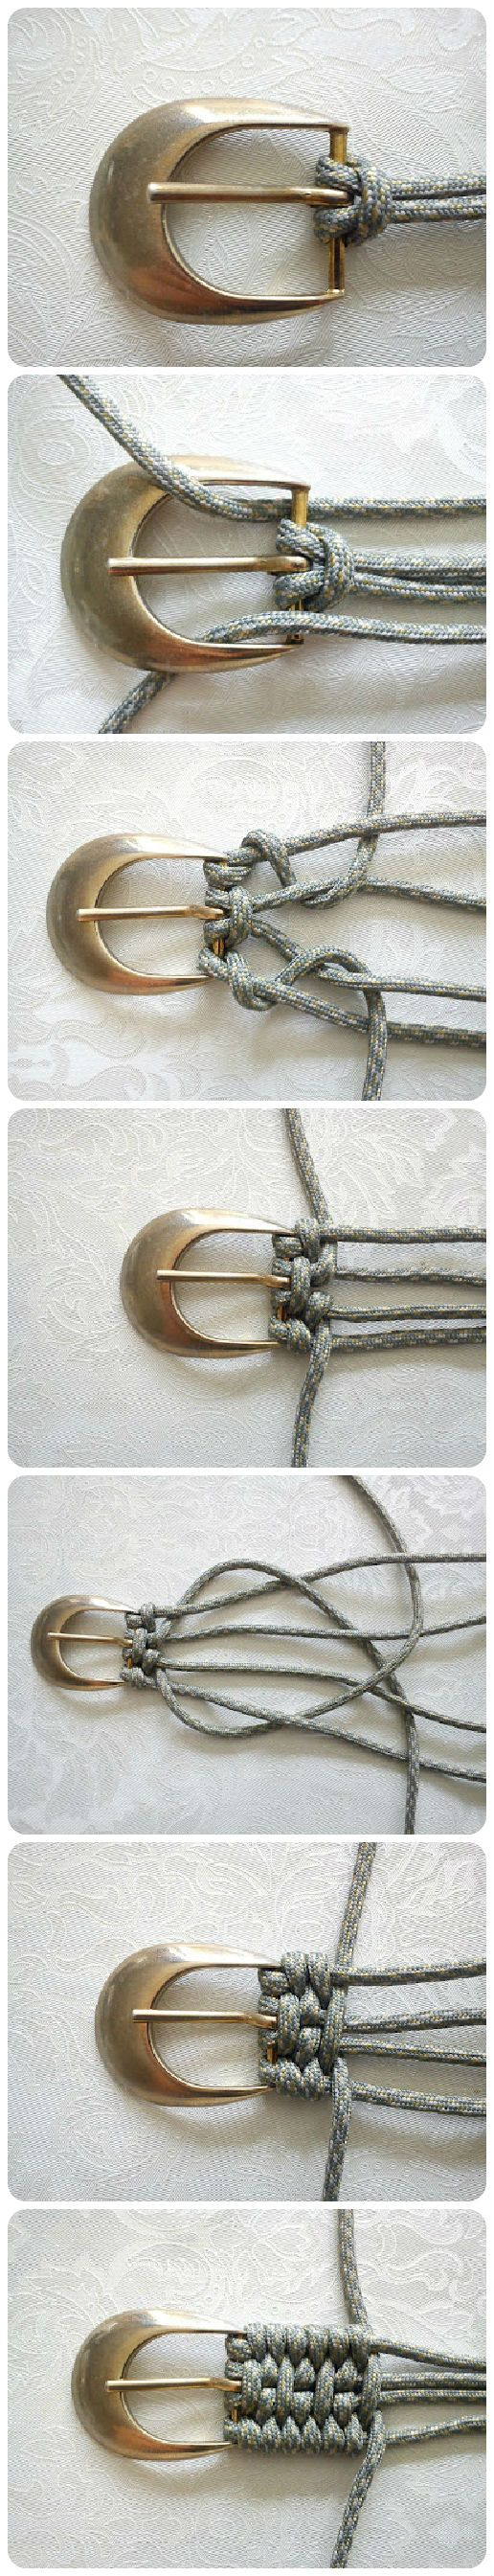 Tutorial for weaving a belt